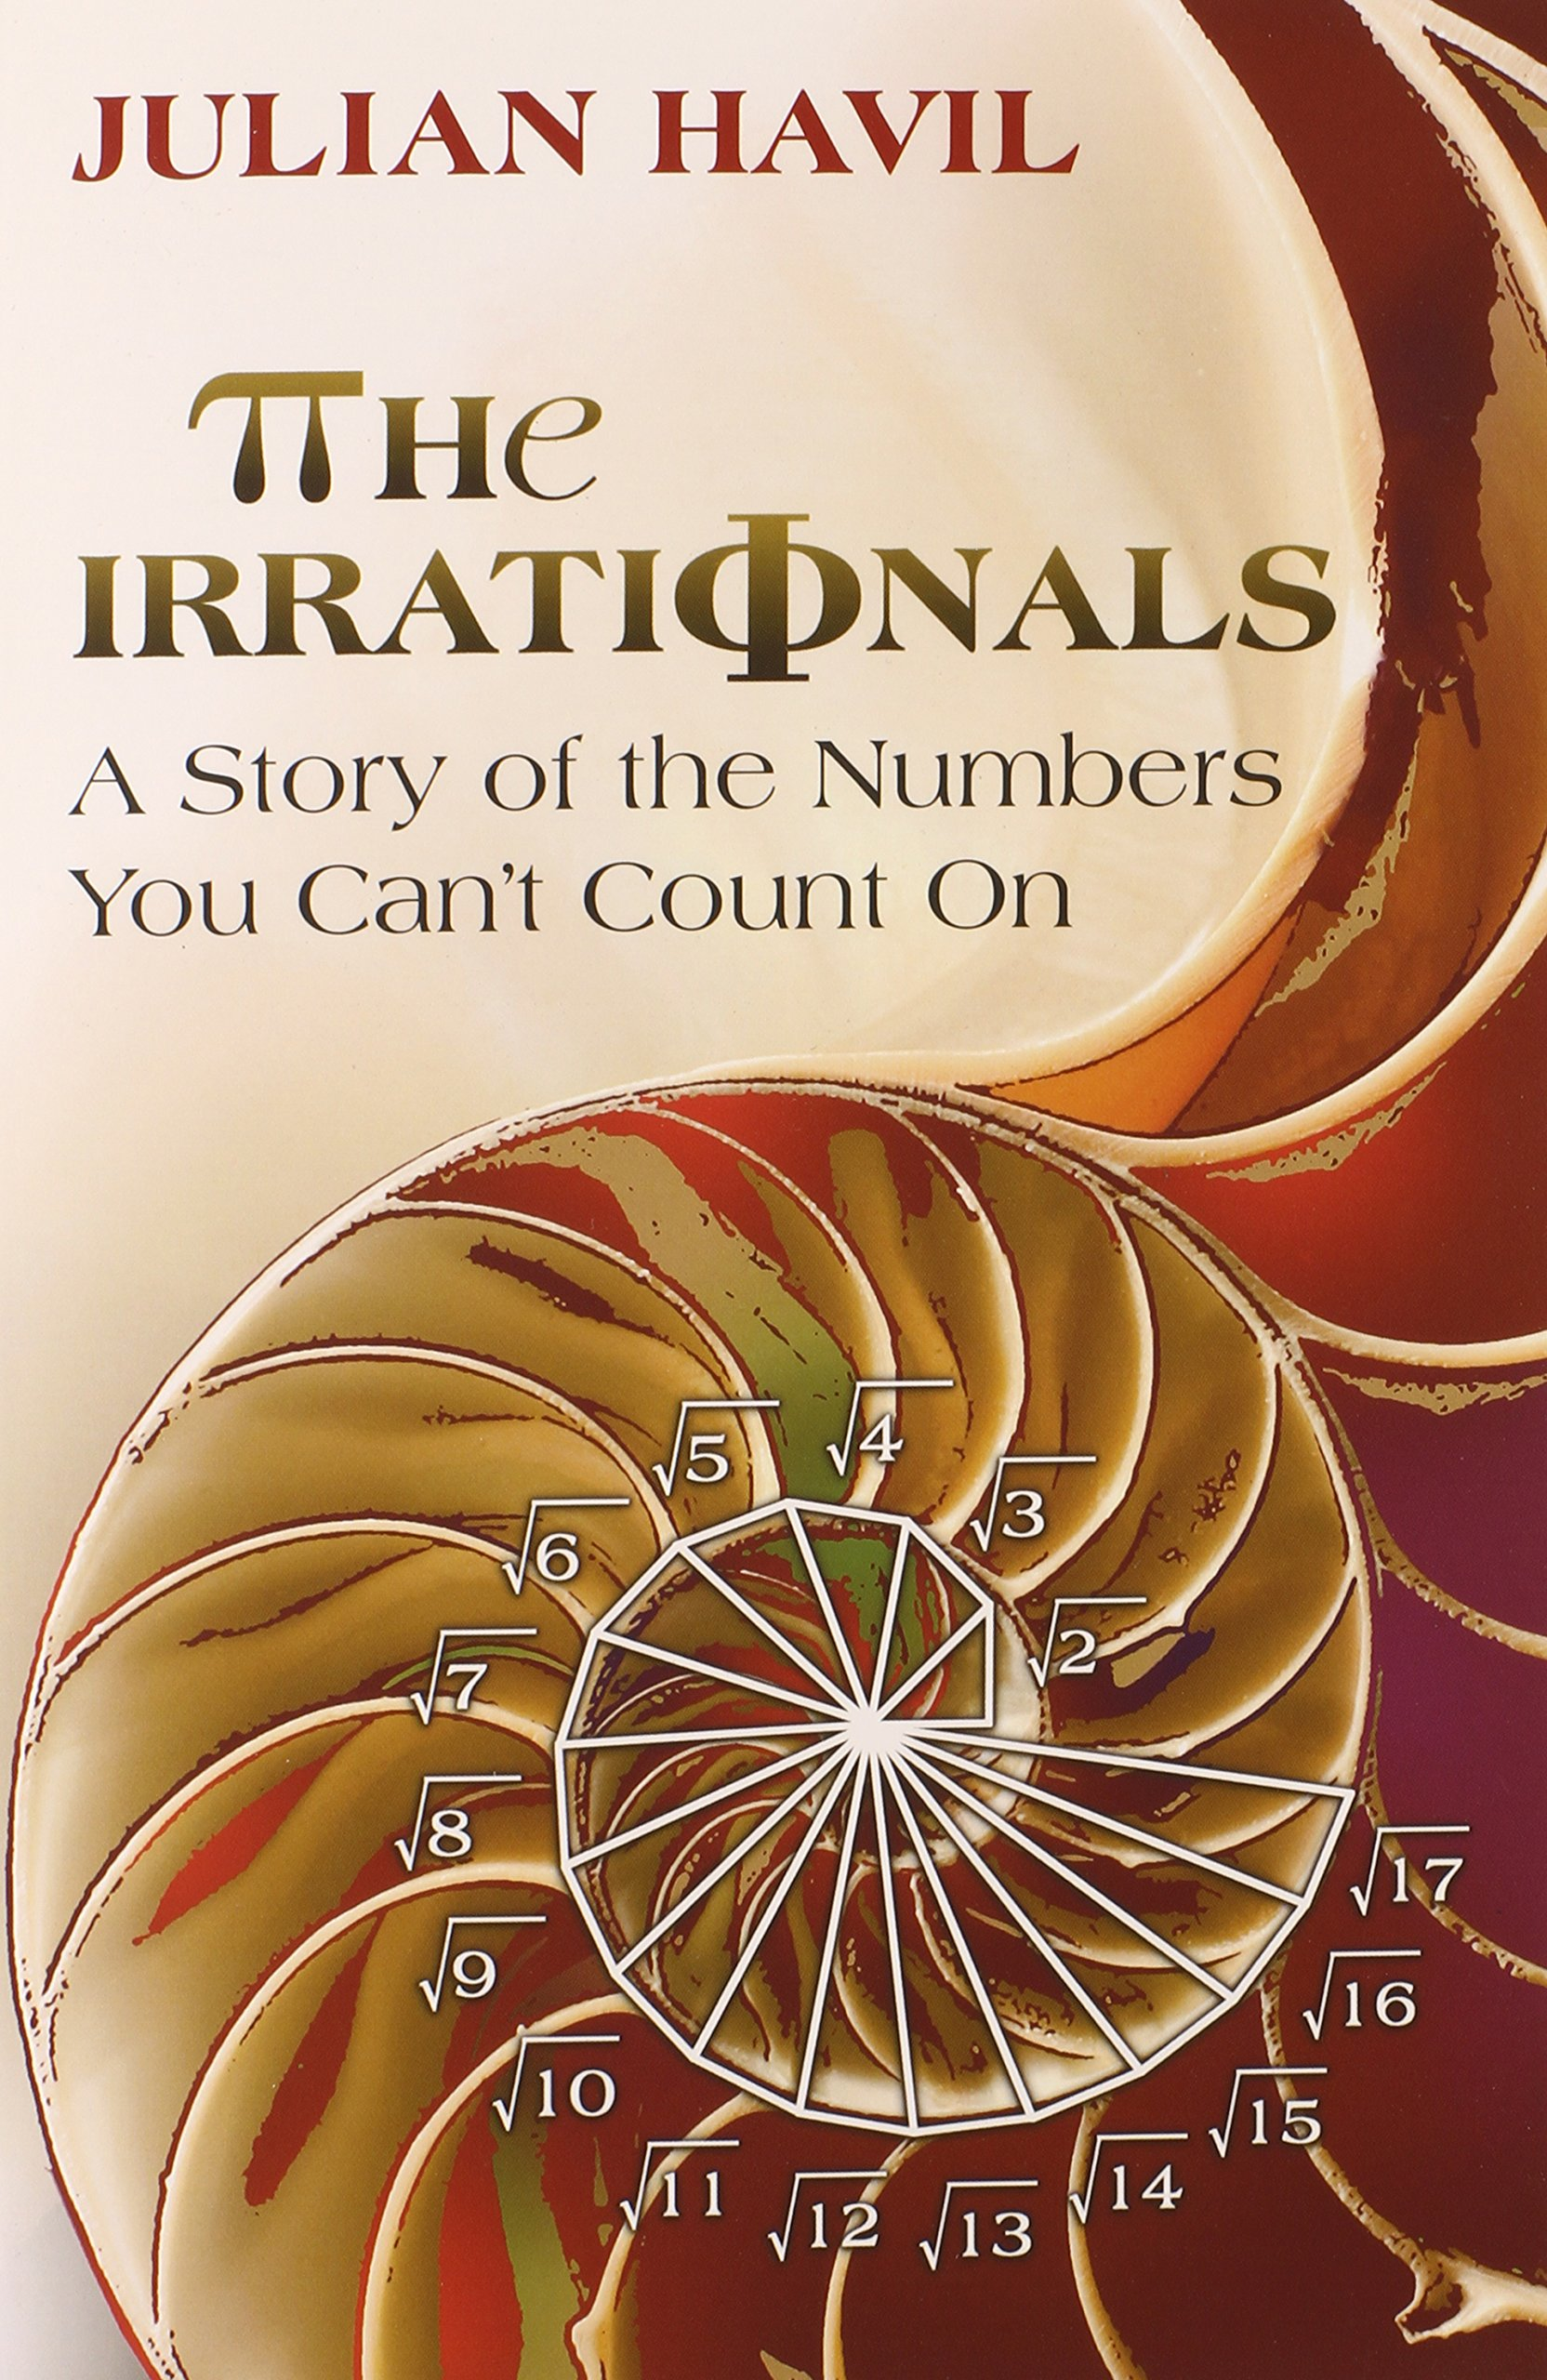 the-irrationals-a-story-of-the-numbers-you-can-t-count-on